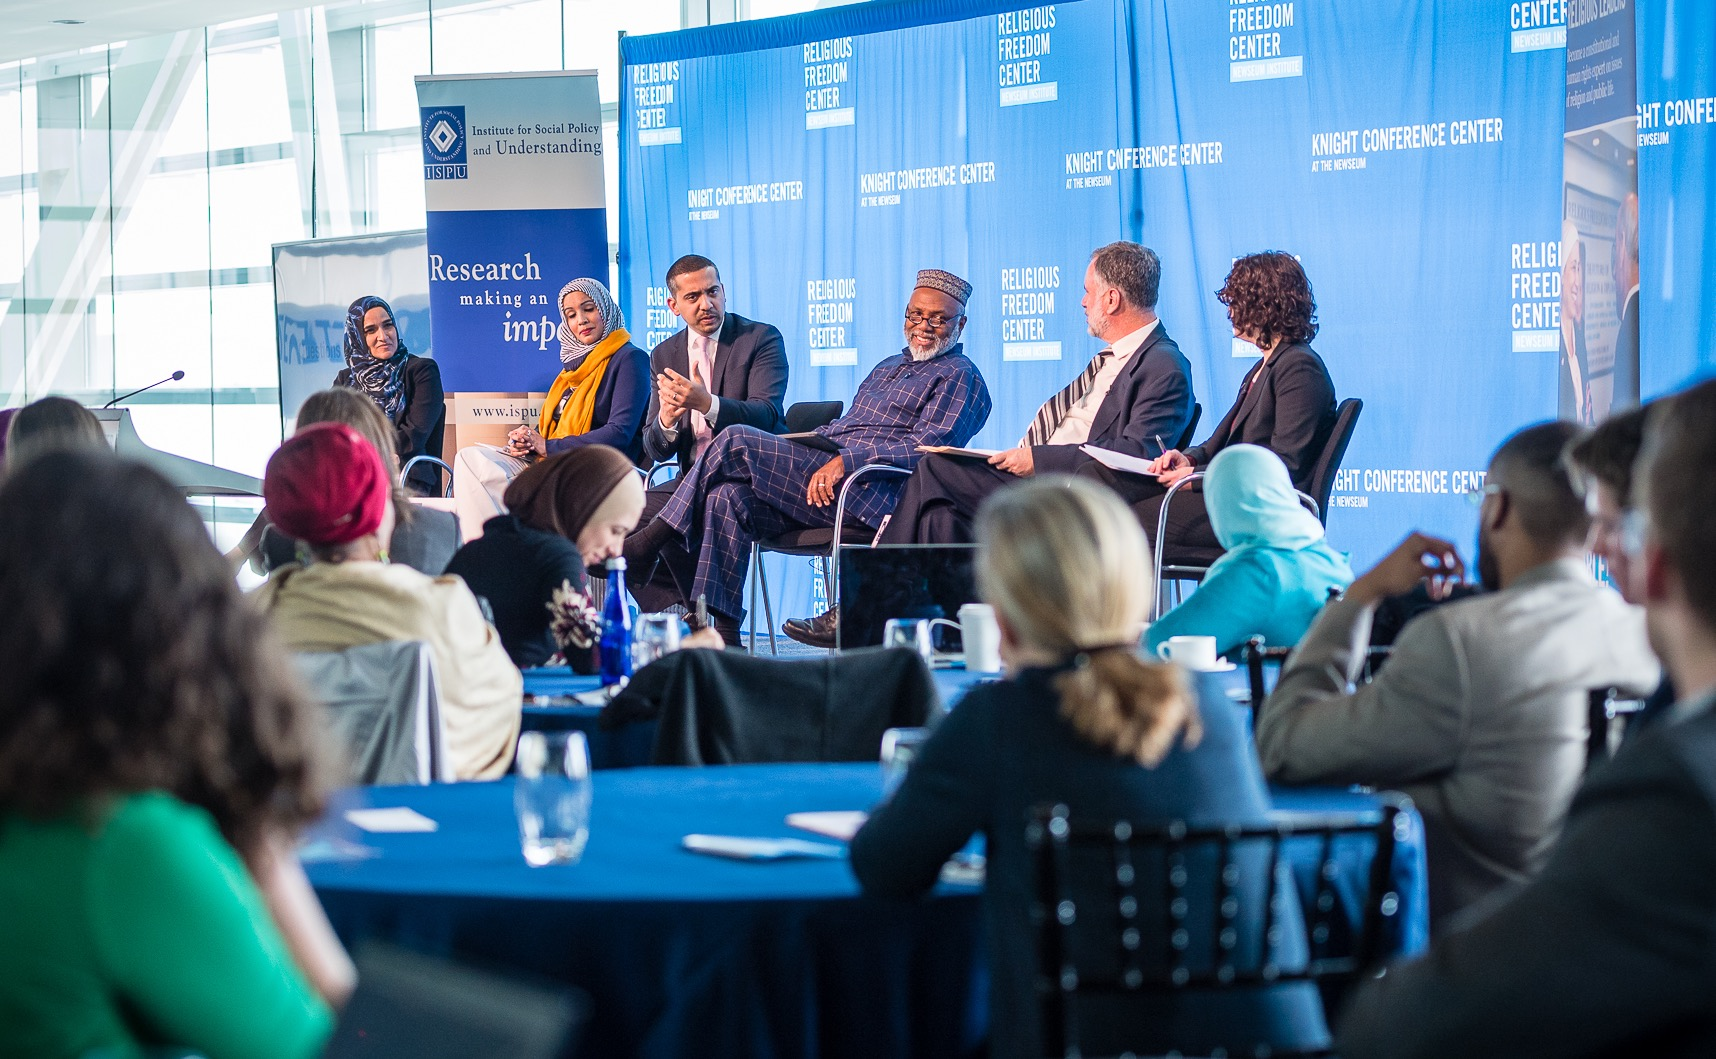 The Institute for Social Policy and Understanding and the Religious Freedom Center of the Newseum Institute presented, American Muslims at the Crossroads, on Tuesday, March 21, 2017 at The Newseum in Washington, DC. Photo by Tim Lundin | TDLphoto.com